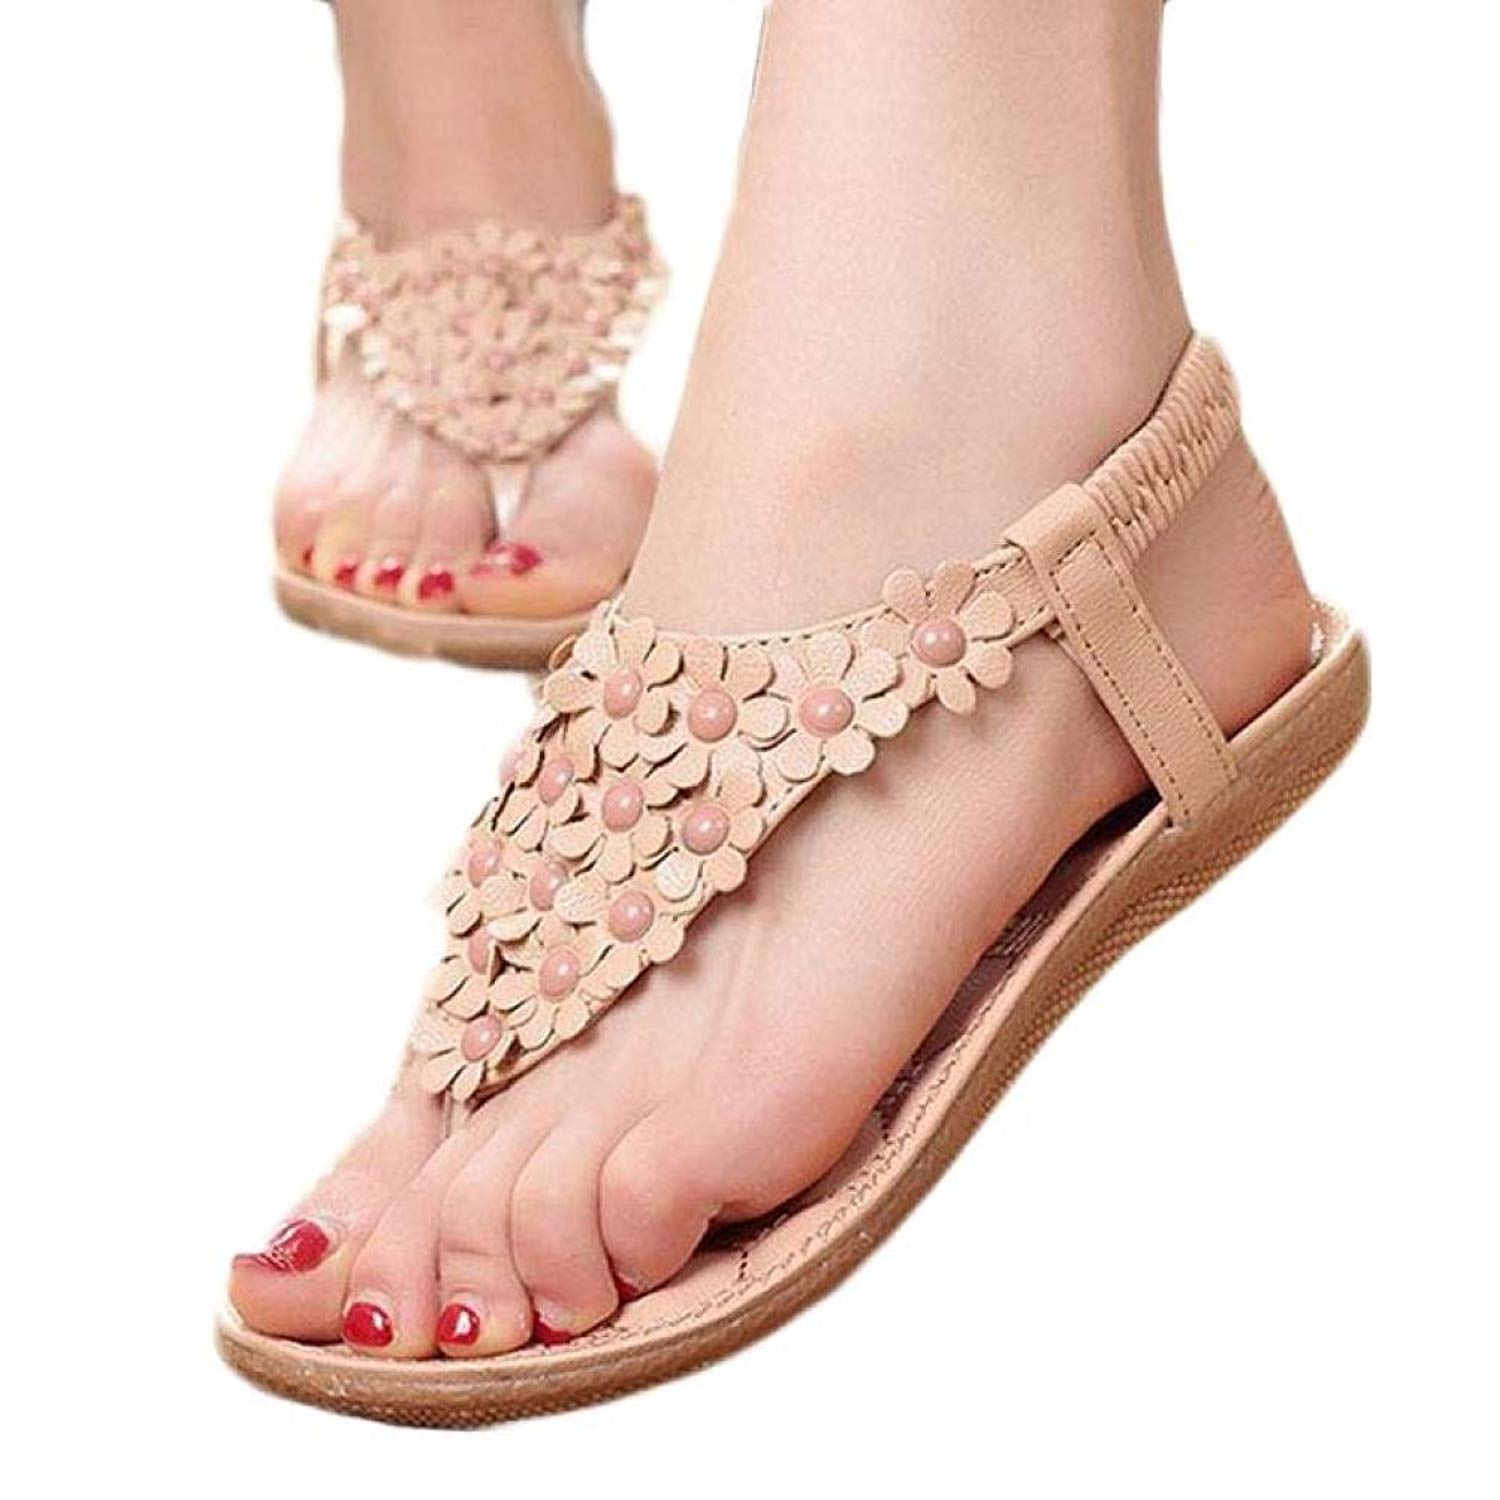 Sexy lace up beaded barefoot sandals knee high sandals